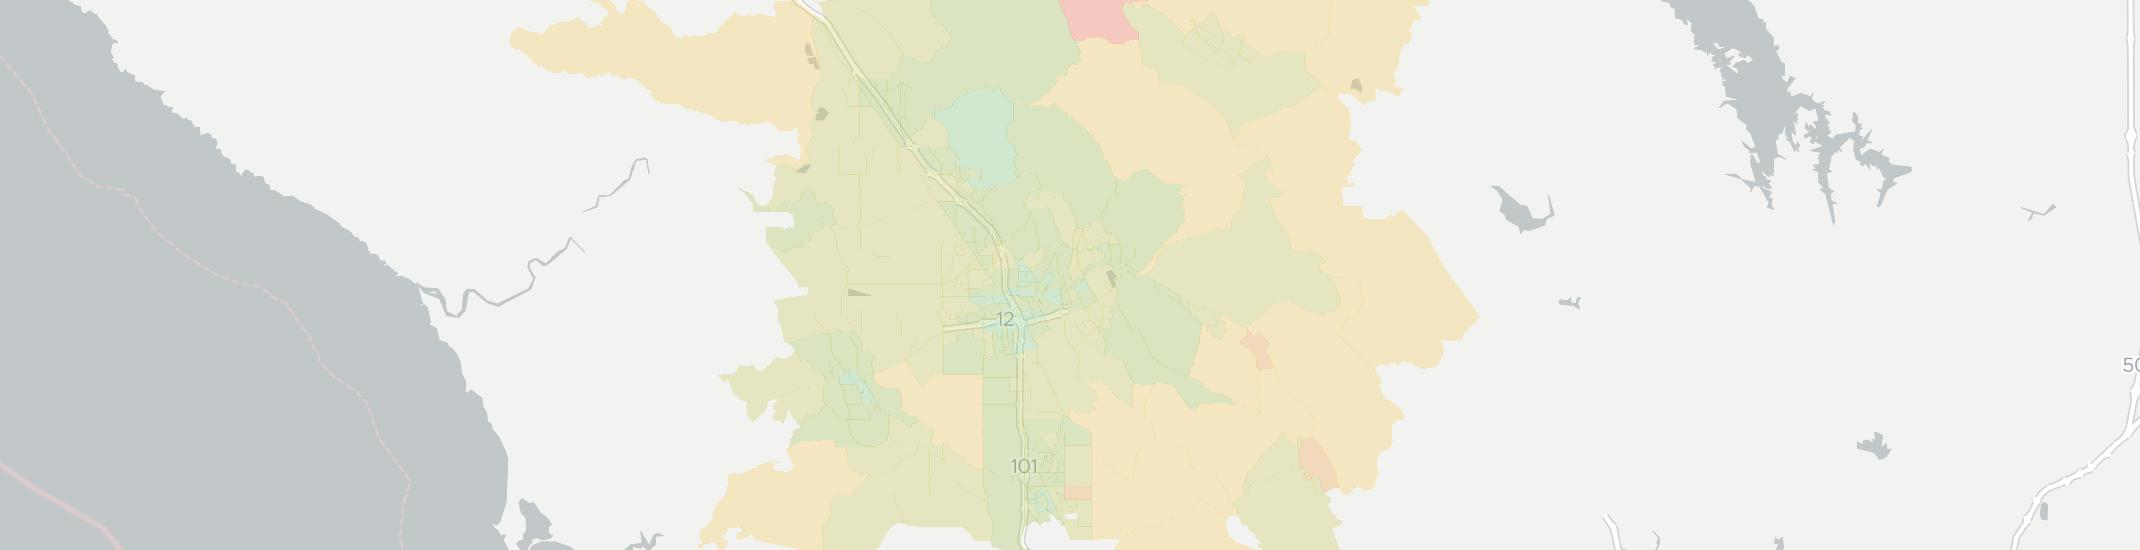 Santa Rosa Internet Competition Map. Click for interactive map.